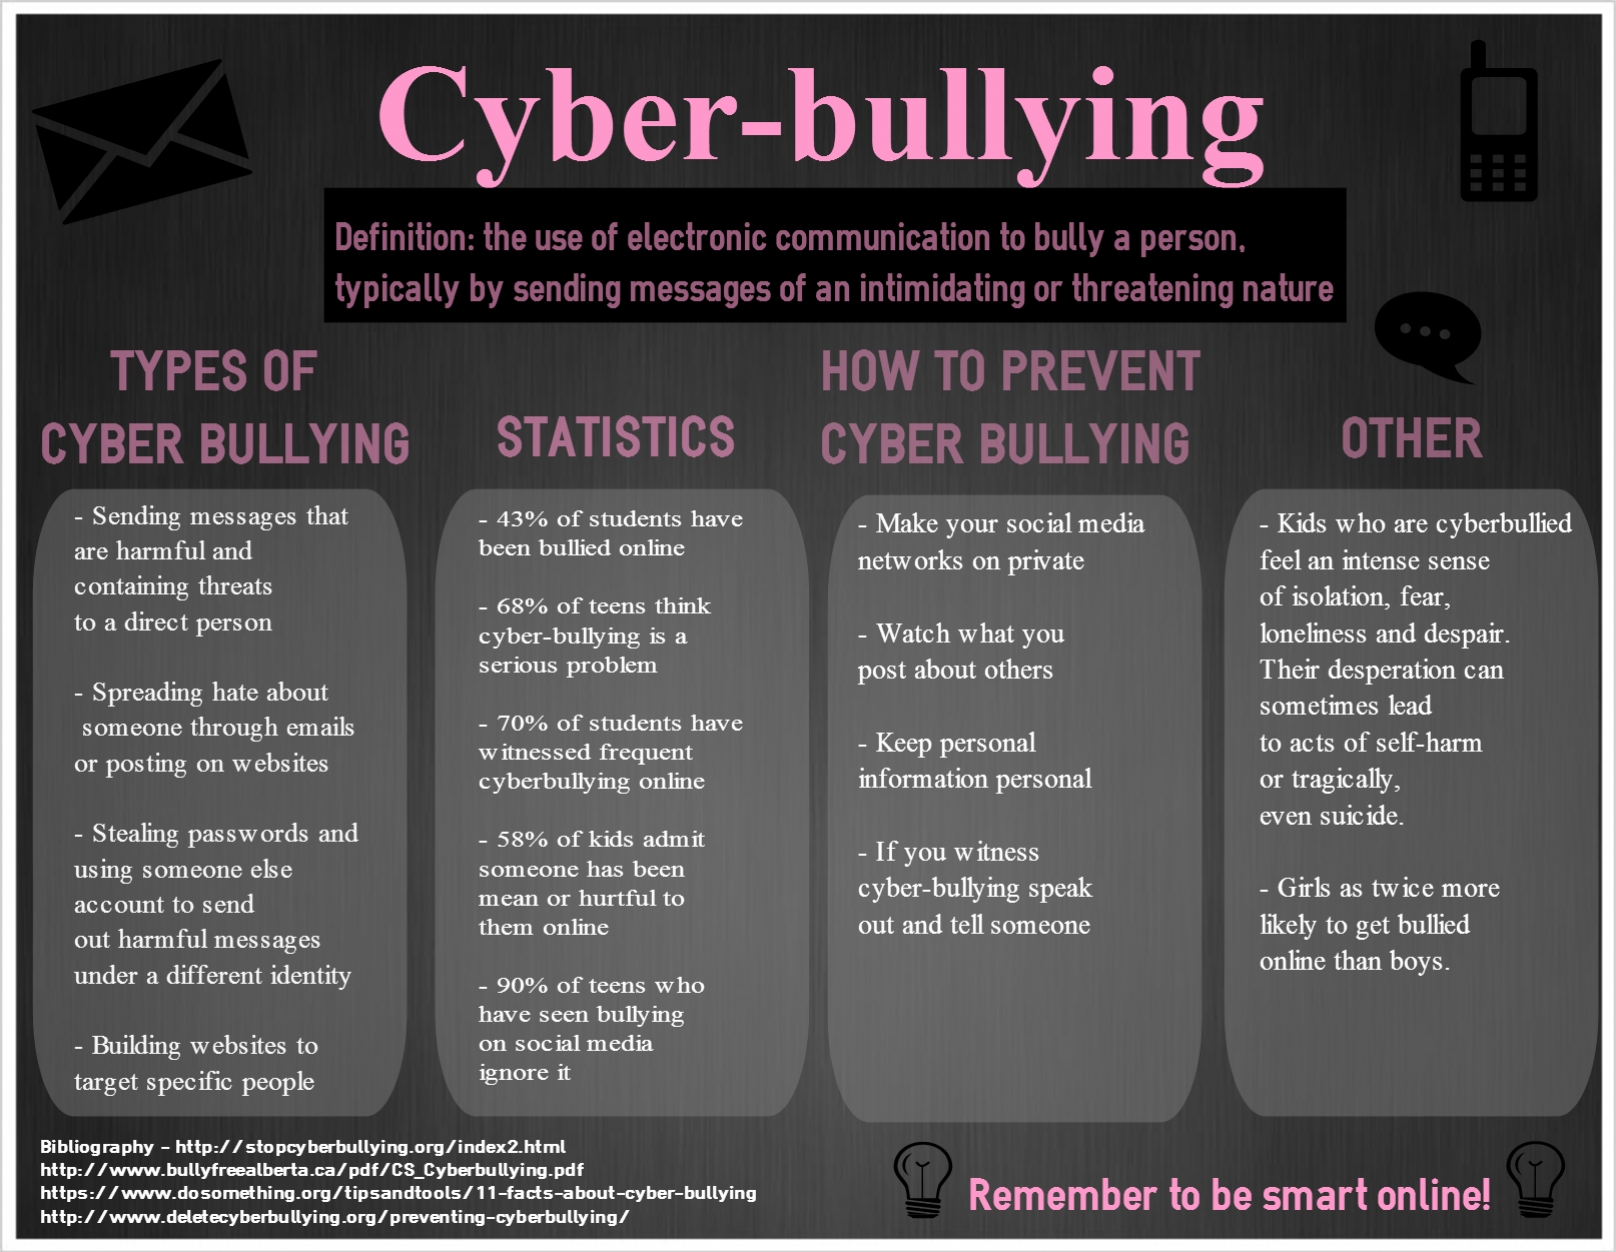 002 Cyberbullying Essay Example Argumentative On Cyber Fearsome Bullying Short Topics Examples Full